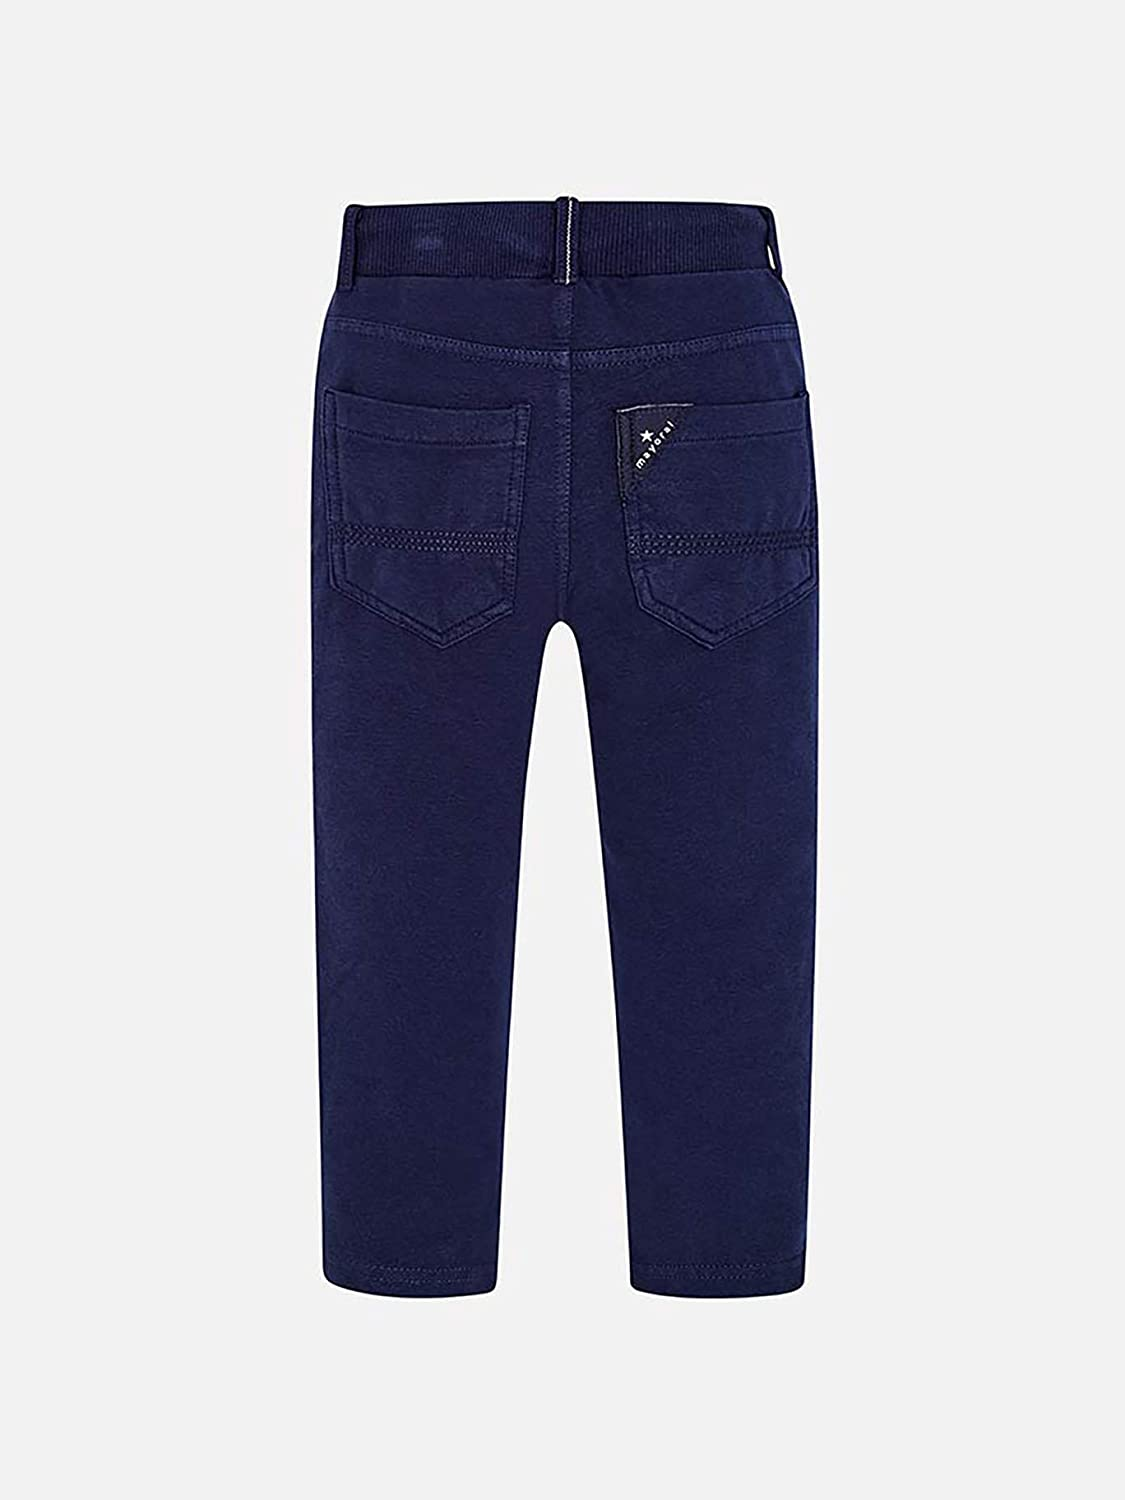 Navy 3526 Mayoral Chenille Pants for Boys